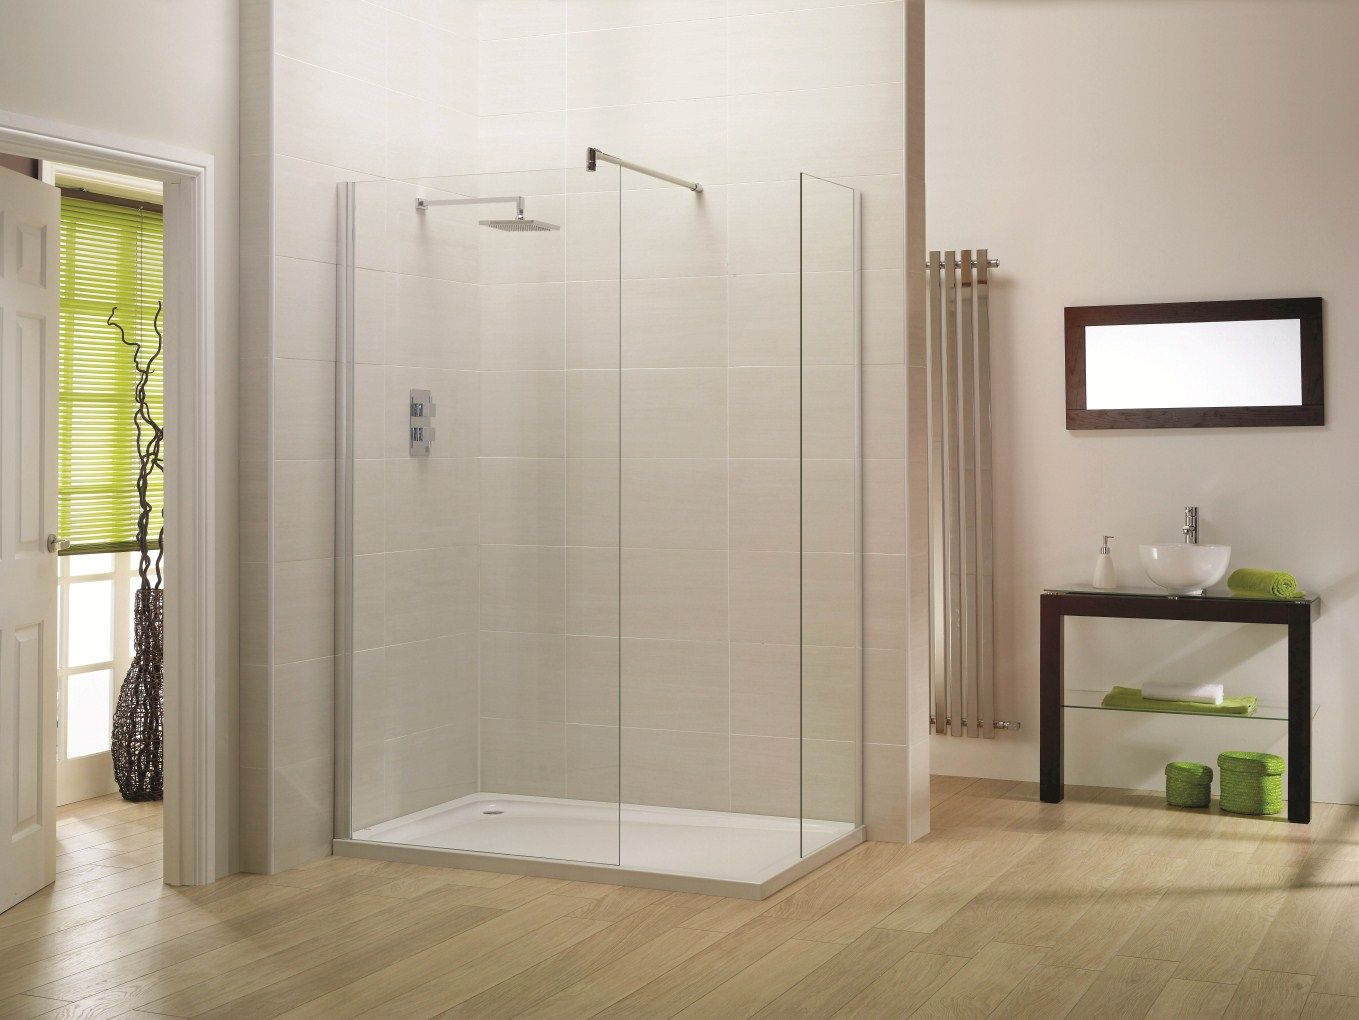 Painting Of Walk In Shower Dimension Main Consideration To